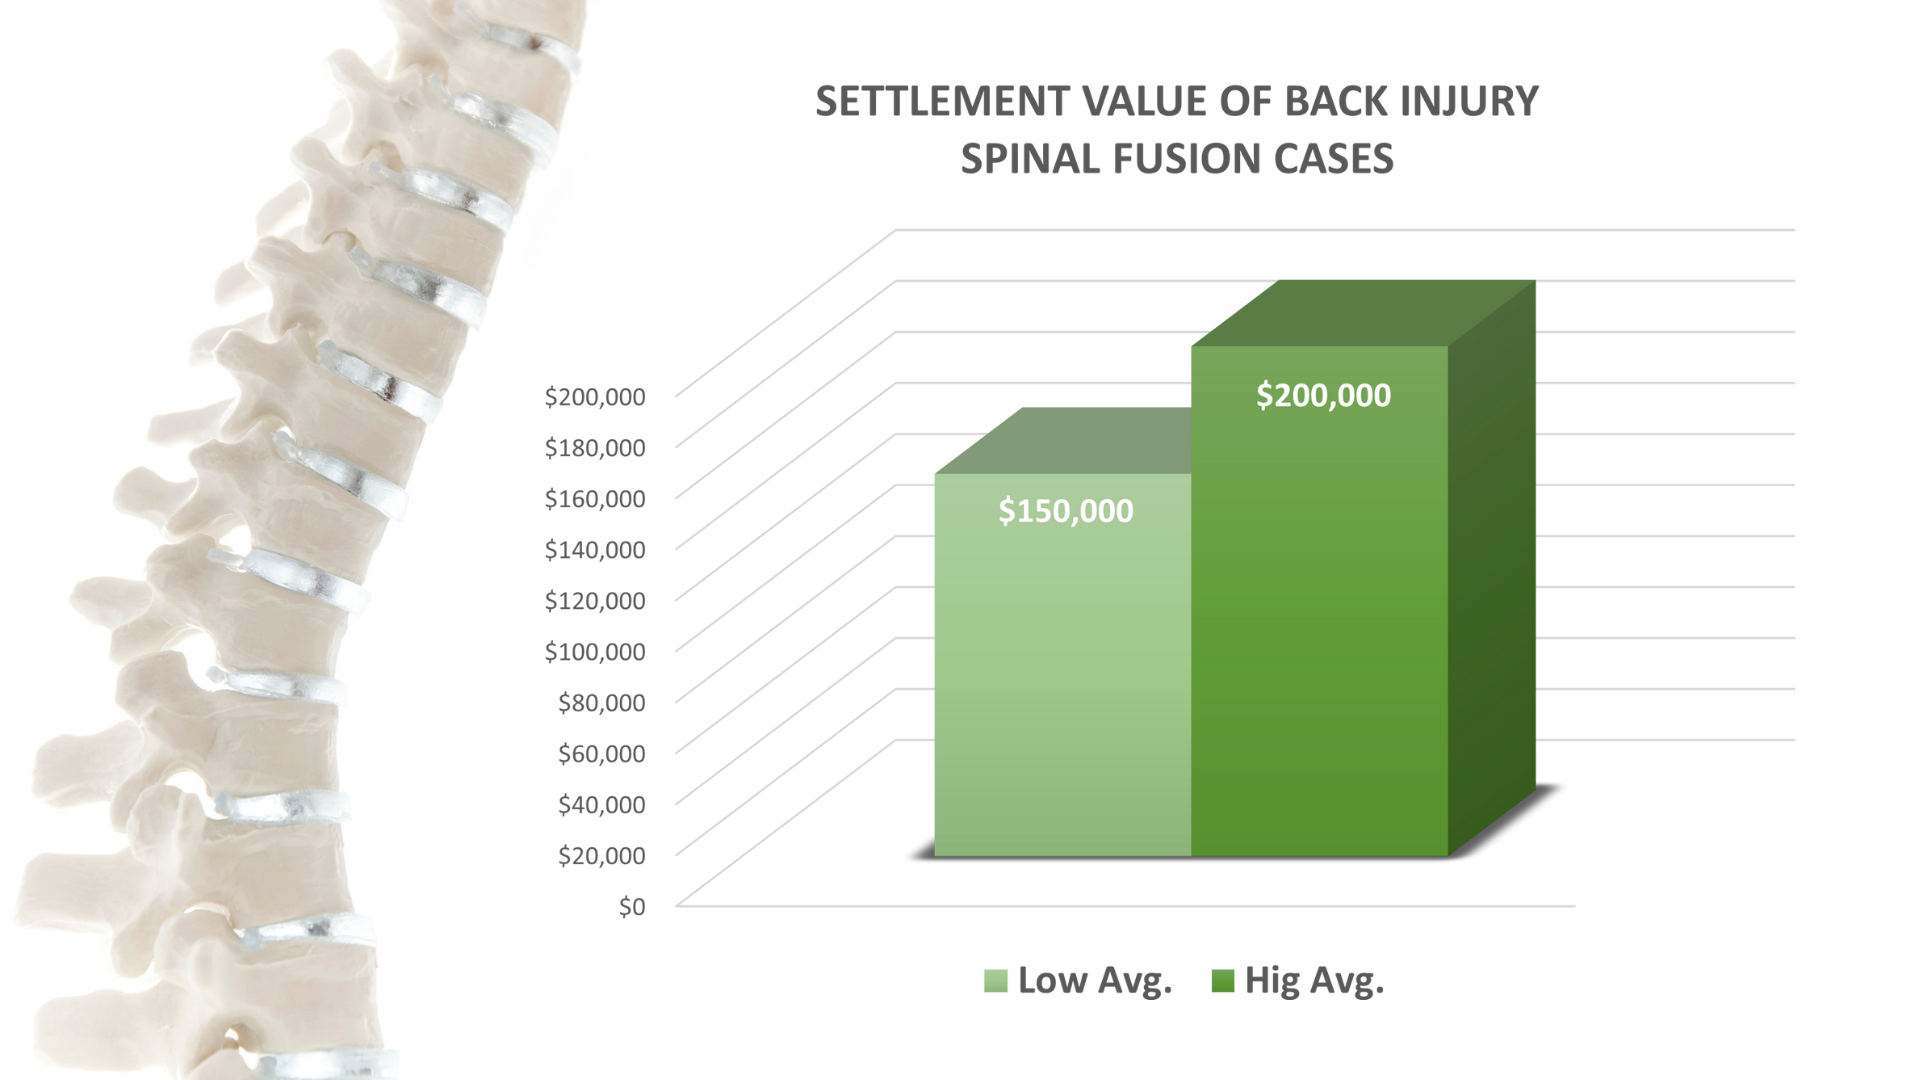 spinal fusion settlement value